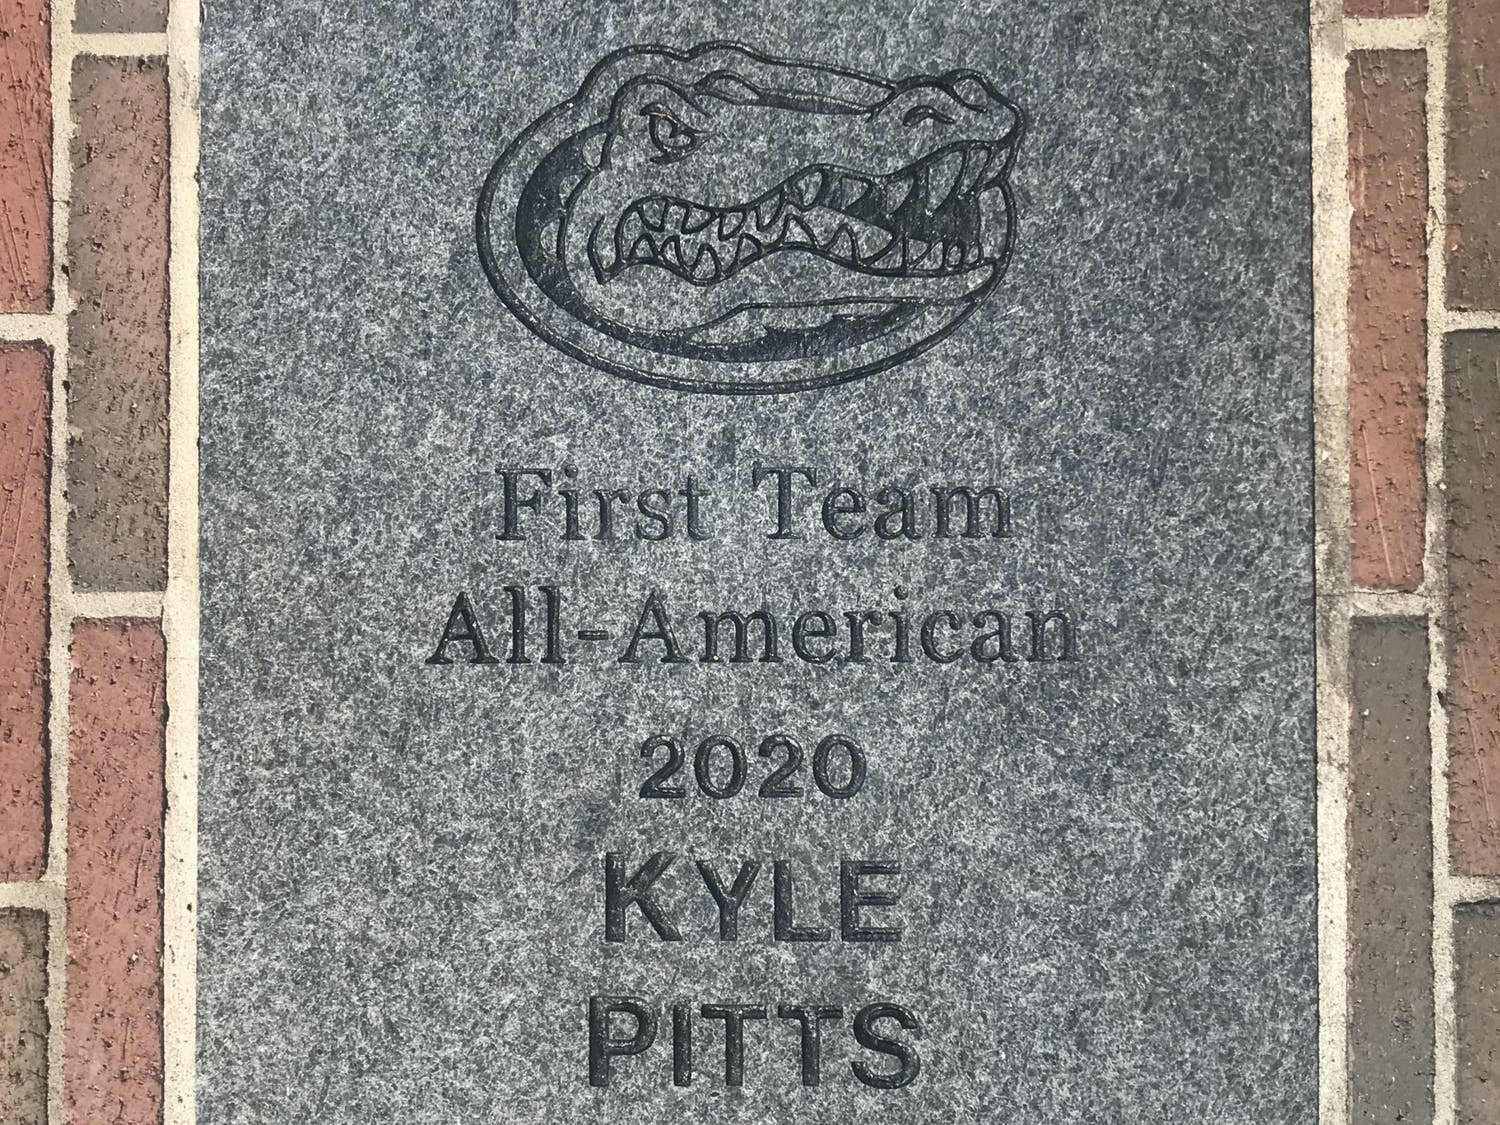 Kyle Pitts' brick outside Ben Hill Griffin Stadium.